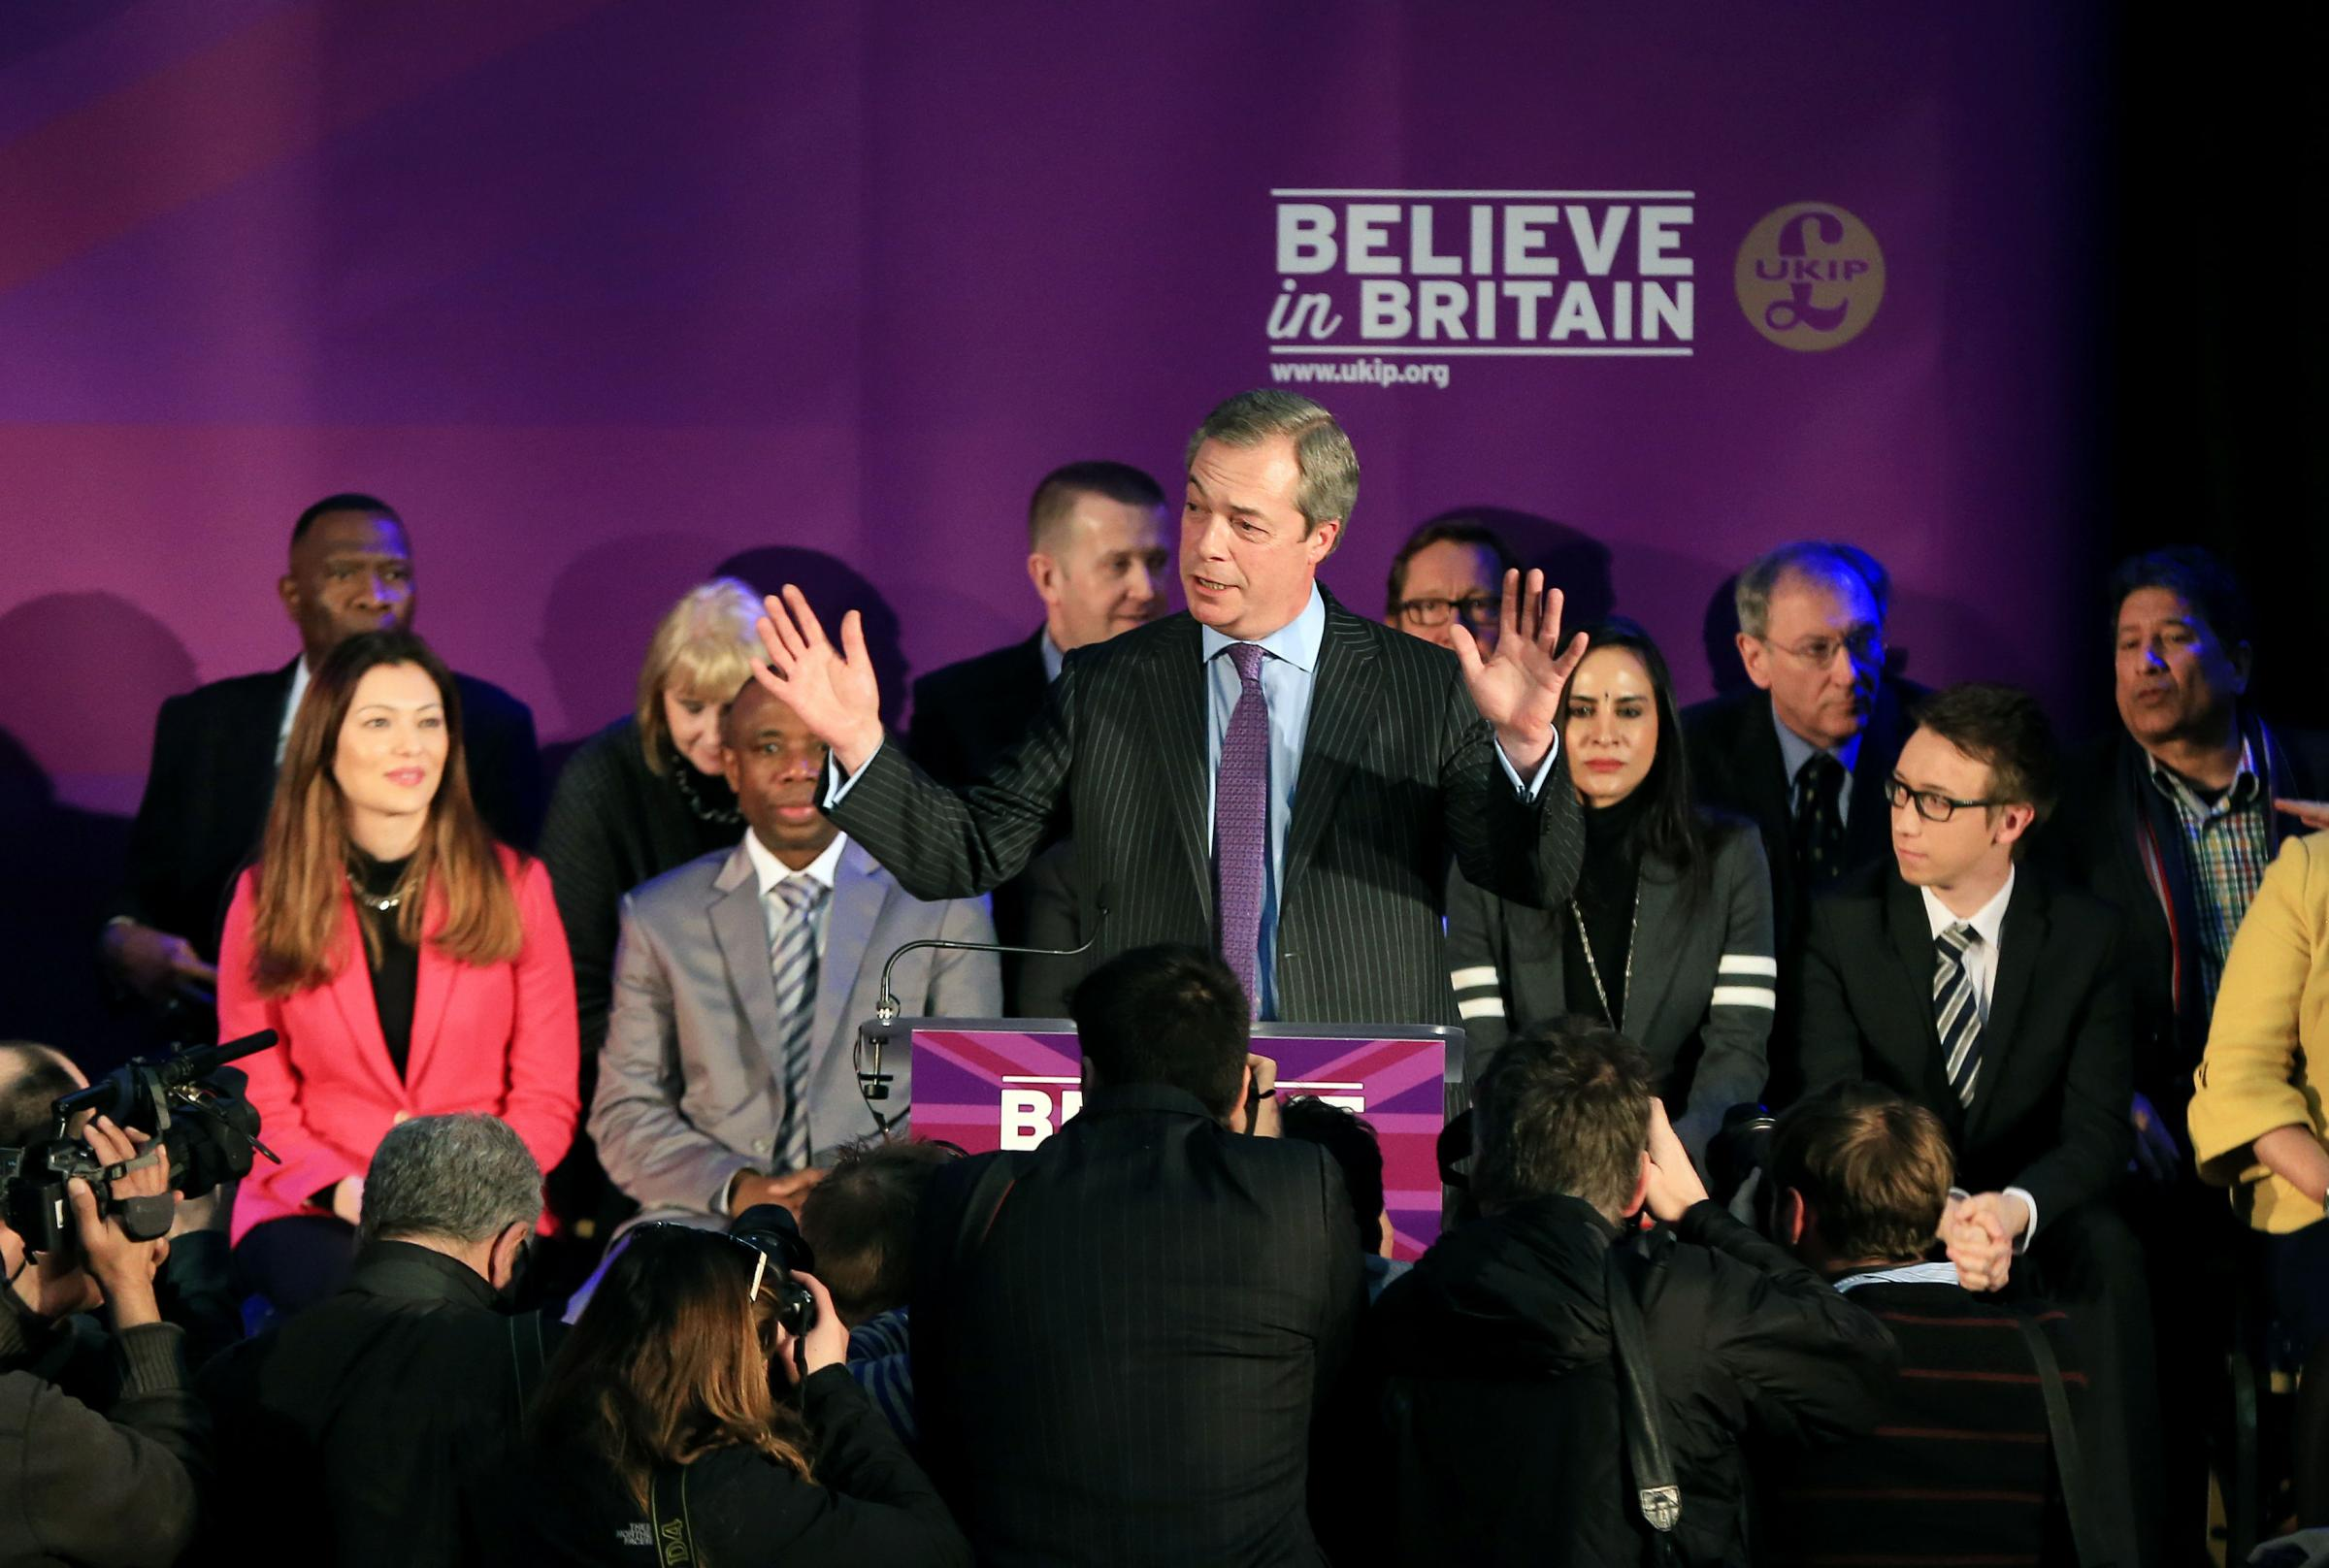 Ethnic minorities spotted behind Nigel Farage prove Ukip 'okay with Asians and blacks'